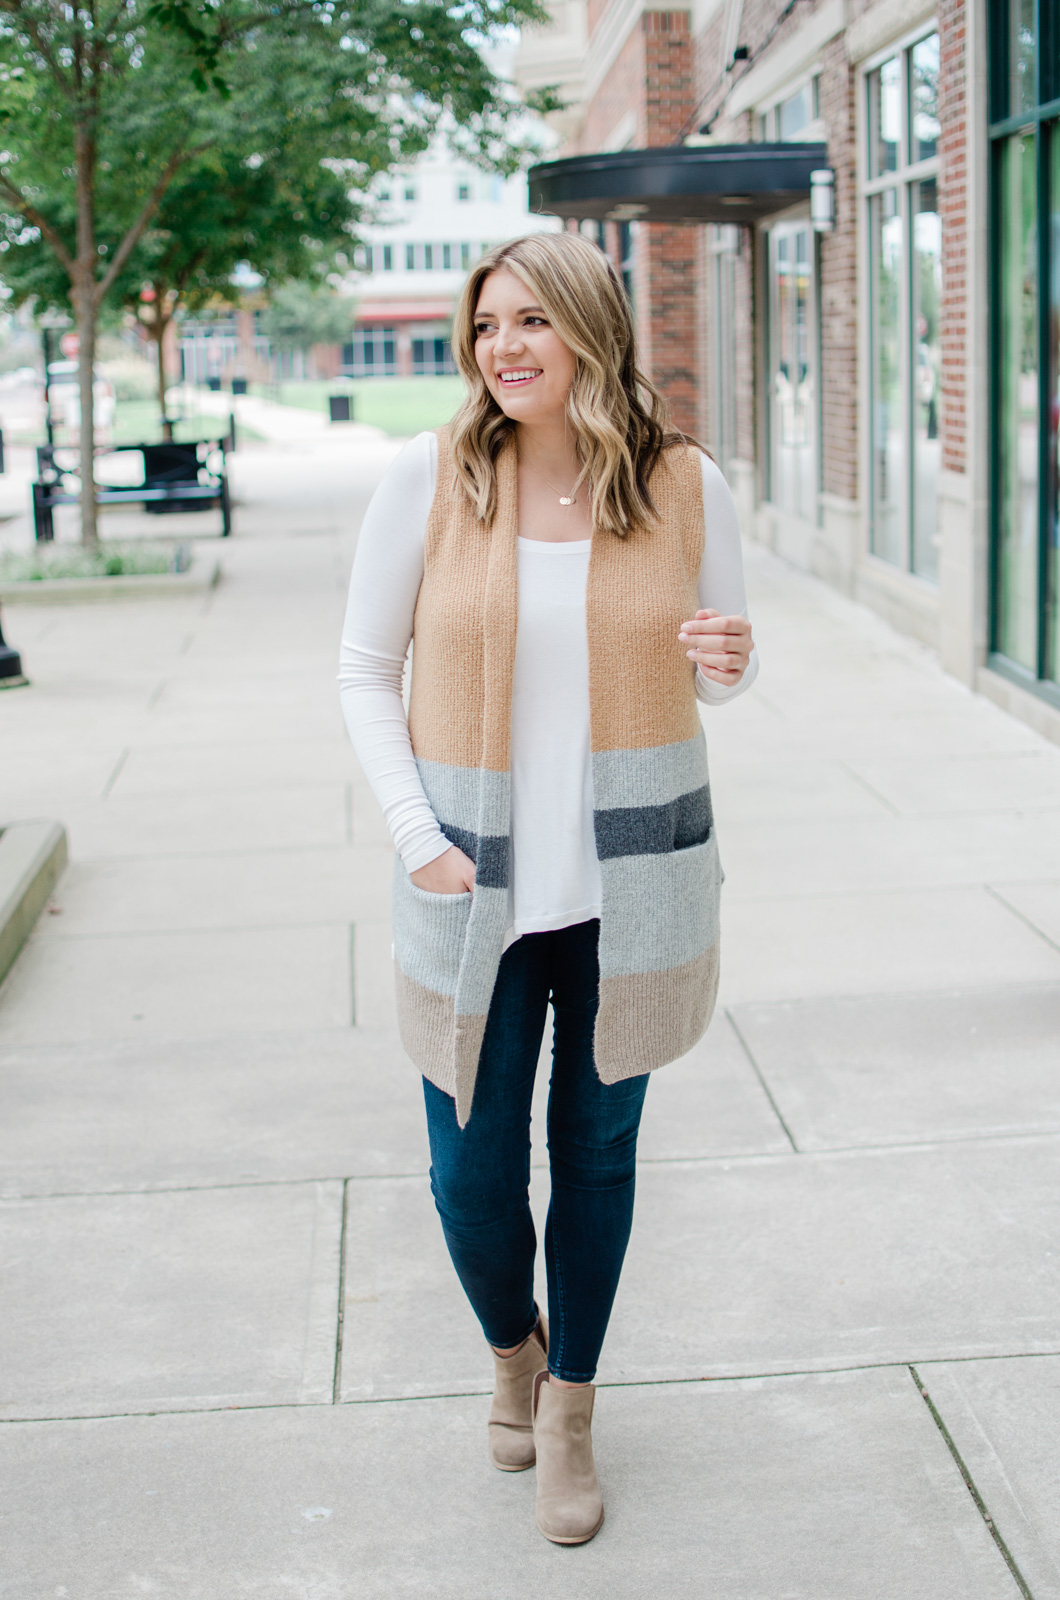 long sweater vest outfit - how to wear an open sweater vest outfit for fall! | bylaurenm.com